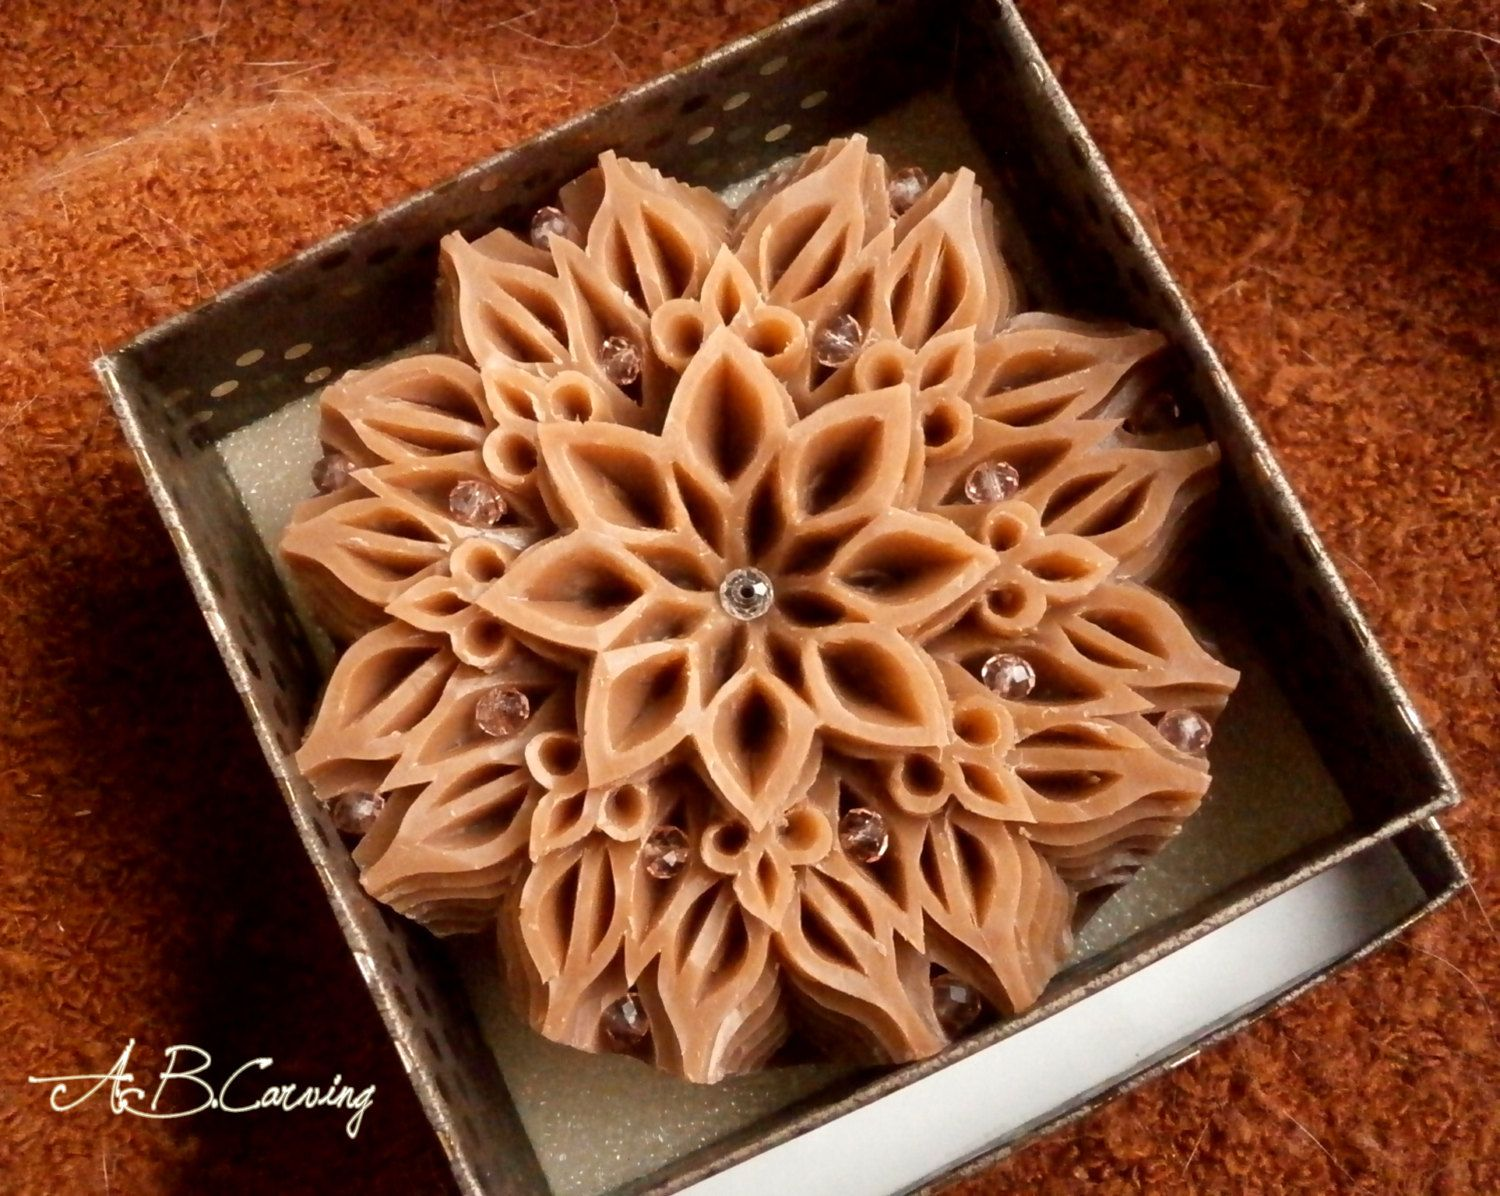 Handmade Carving soap, hand carved soap, cinnamon carving soap, mandala carving soap, glycerine carving soap, lavender cinnamon round soap by ABCarving on Etsy